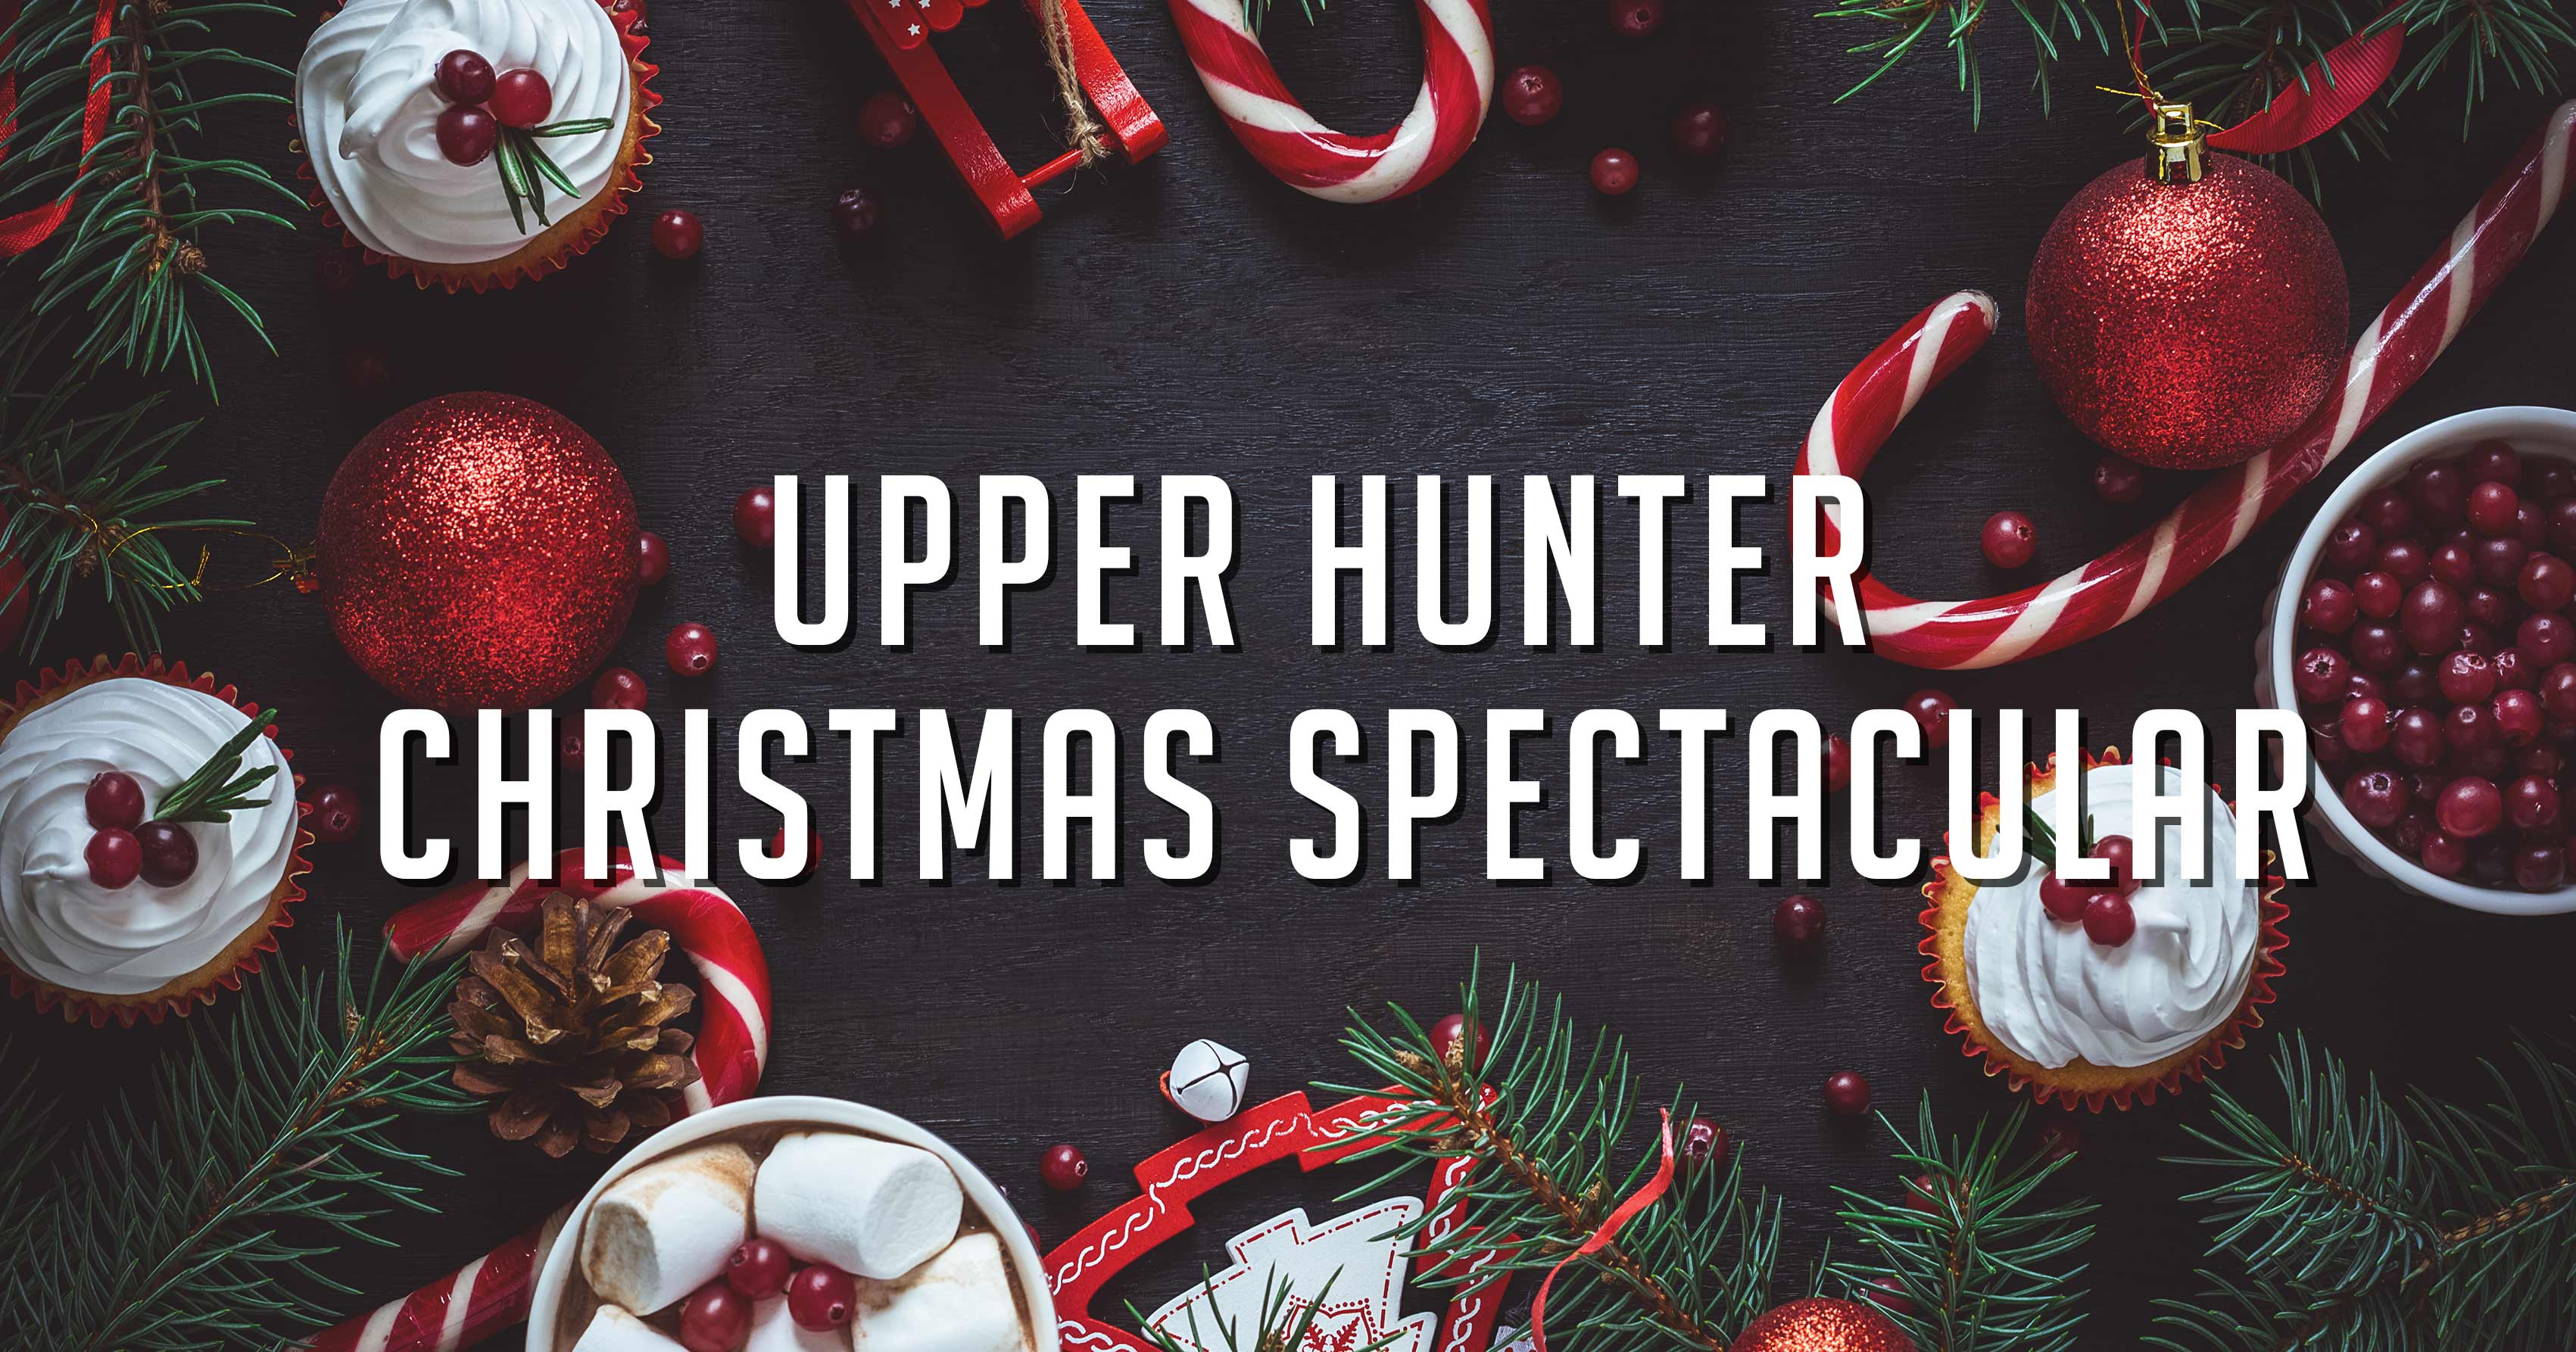 UPPER HUNTER CHRISTMAS SPECTACULAR